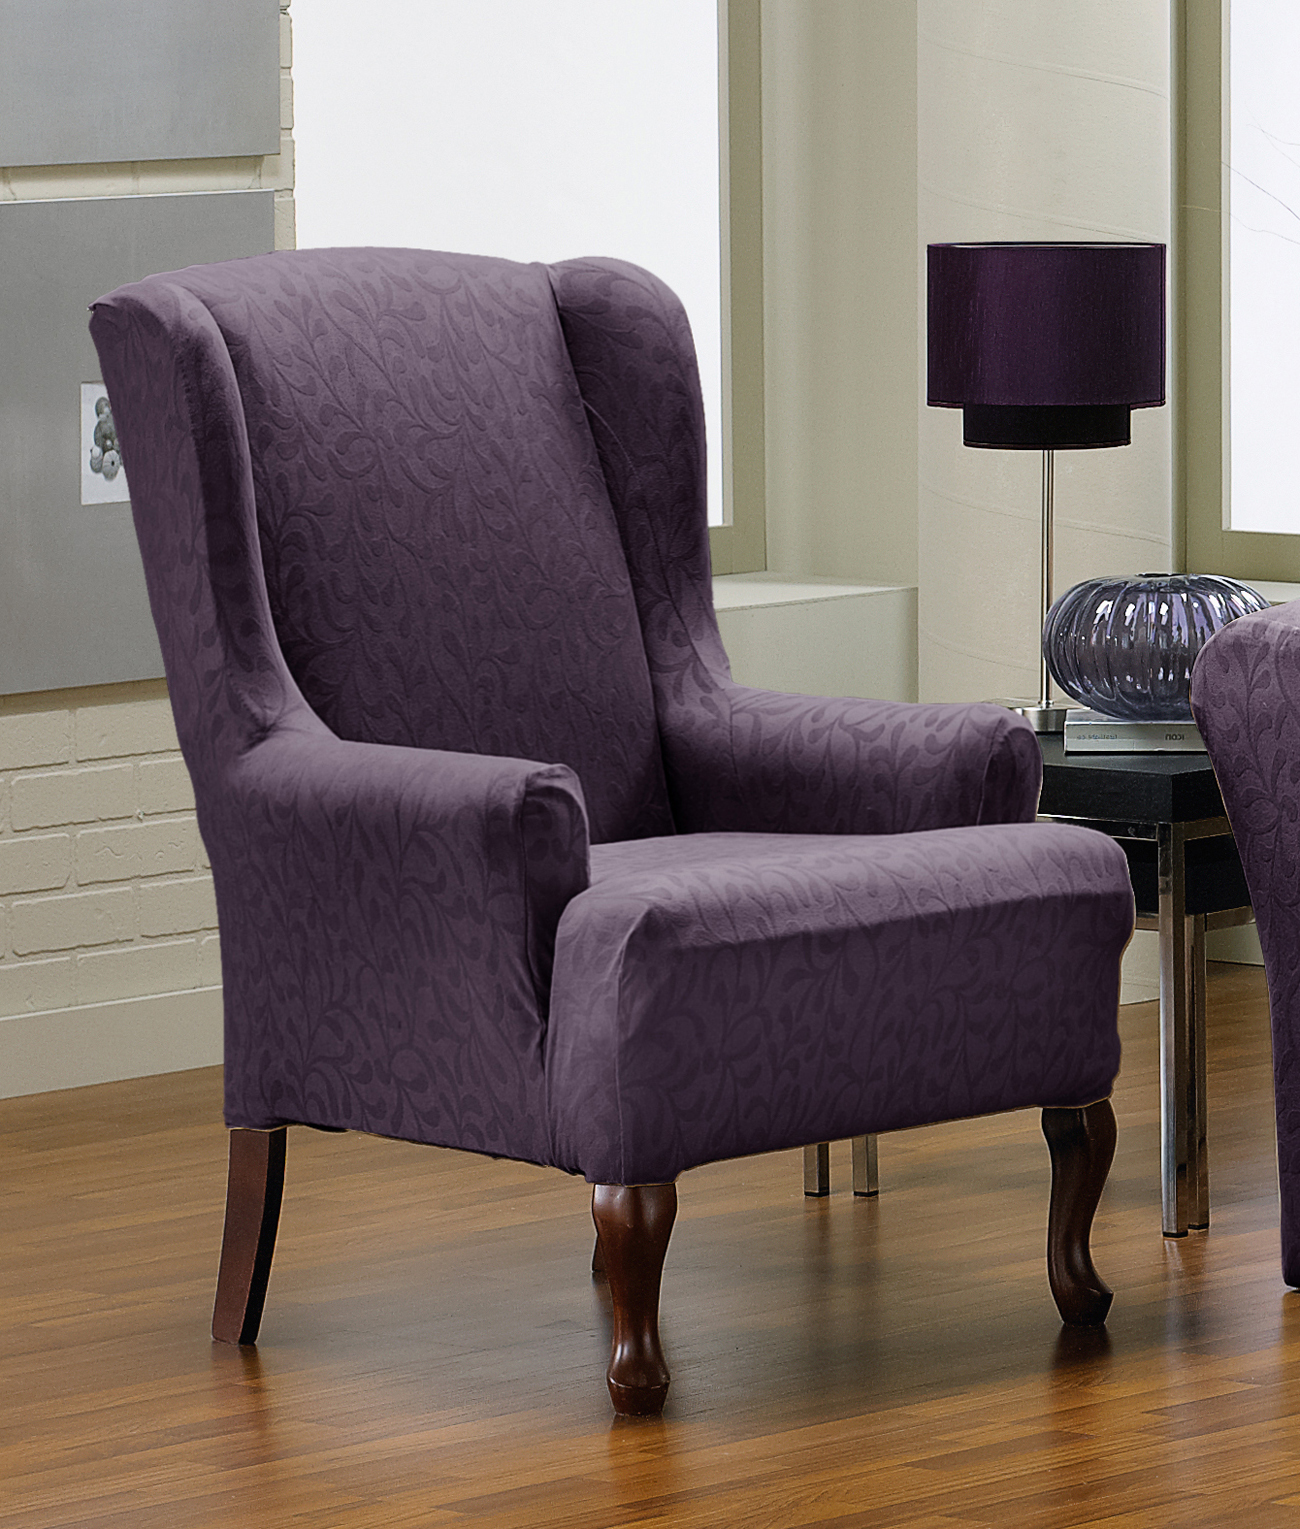 Image of: Wing Chair Recliner Ideas